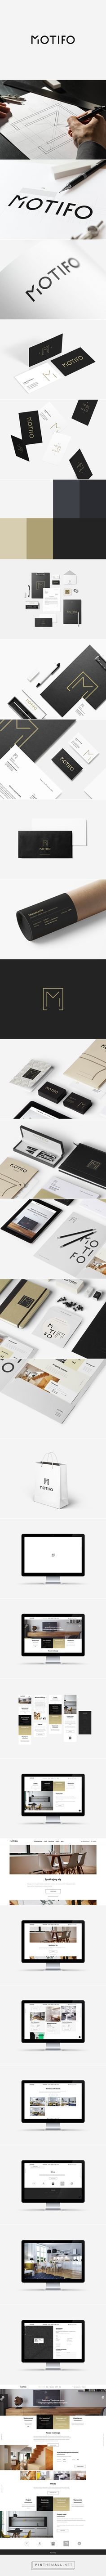 identity / MOTIFO - Interior Design Architect | Branding & Website